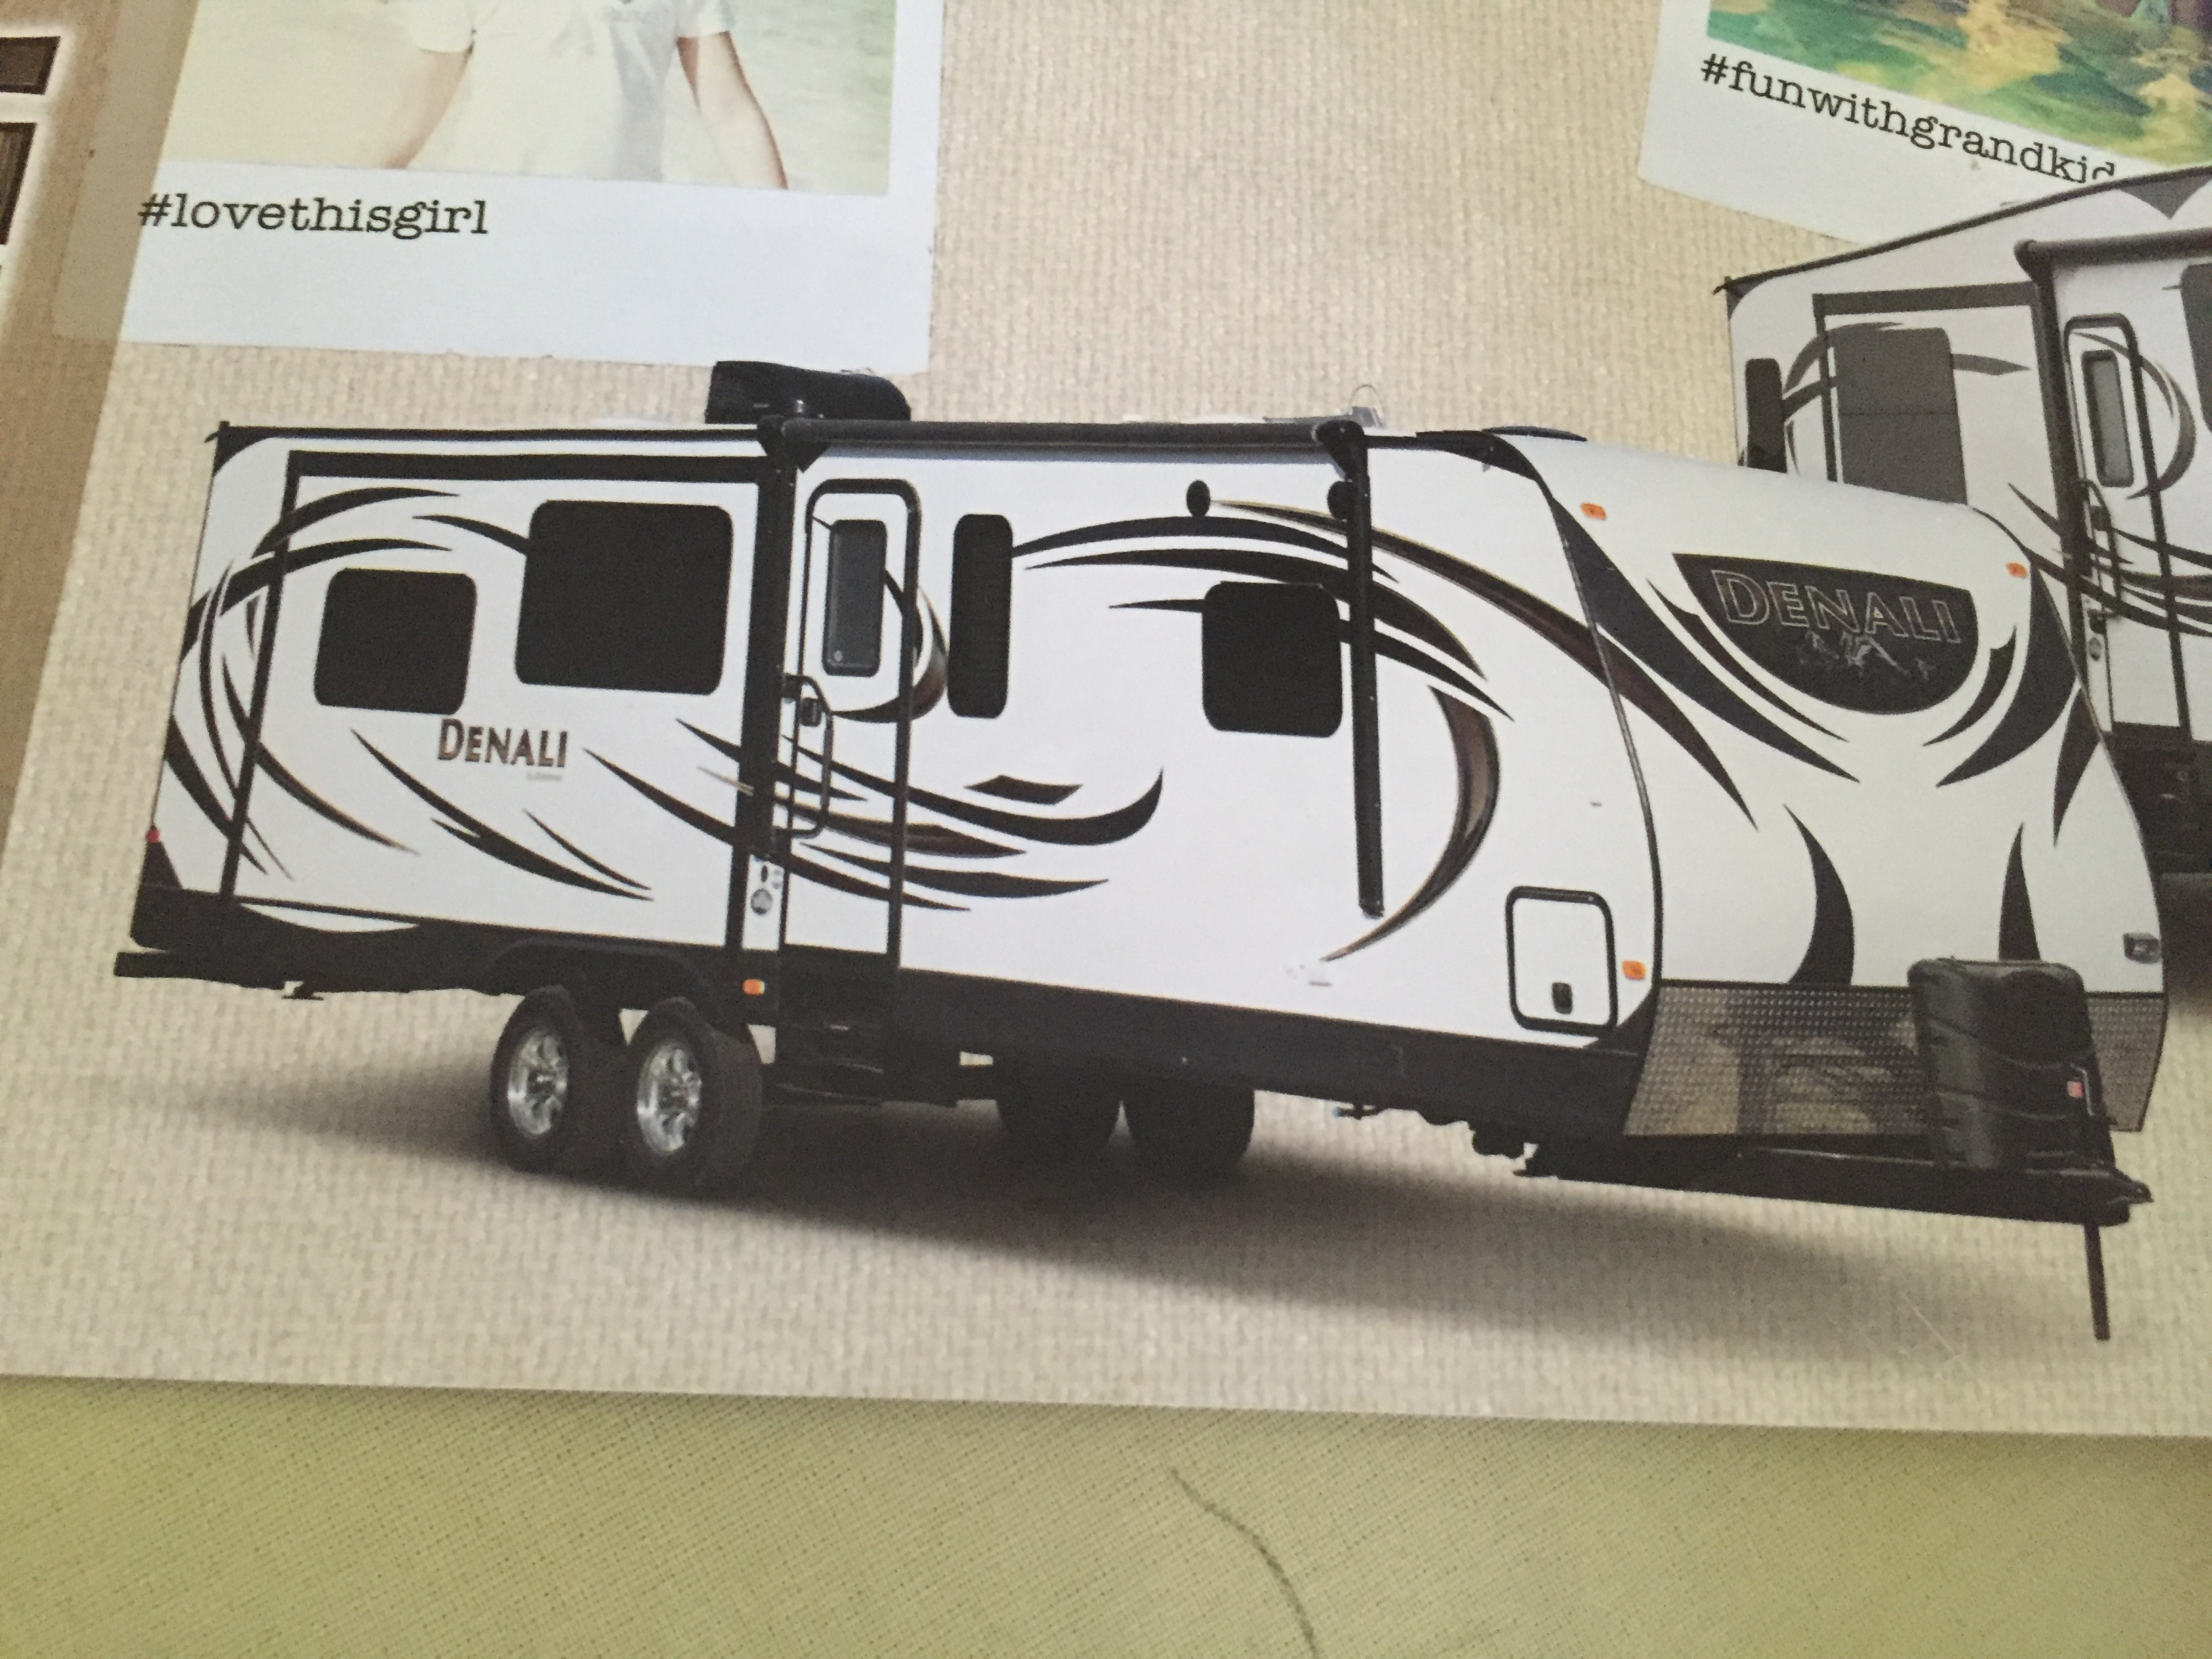 Dutchman Denali travel trailer 2015